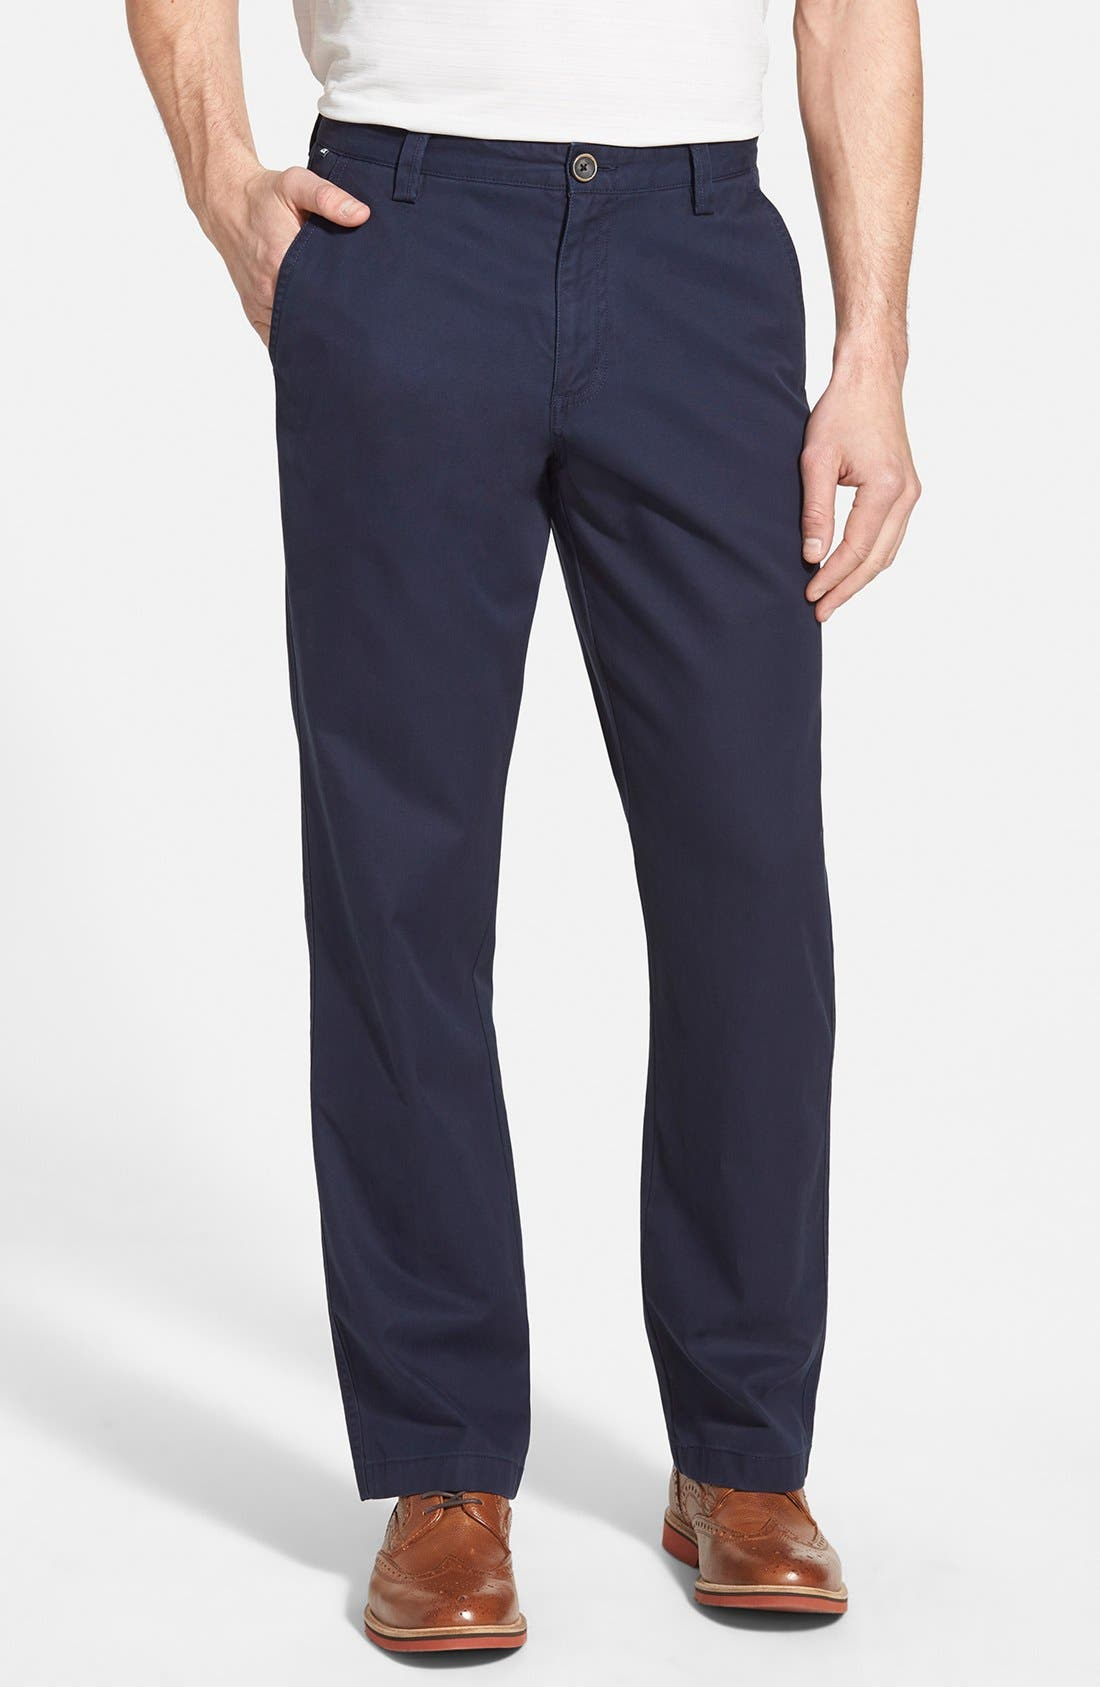 Cutter & Buck 'Beckett' Straight Leg Washed Cotton Pants (Big & Tall)